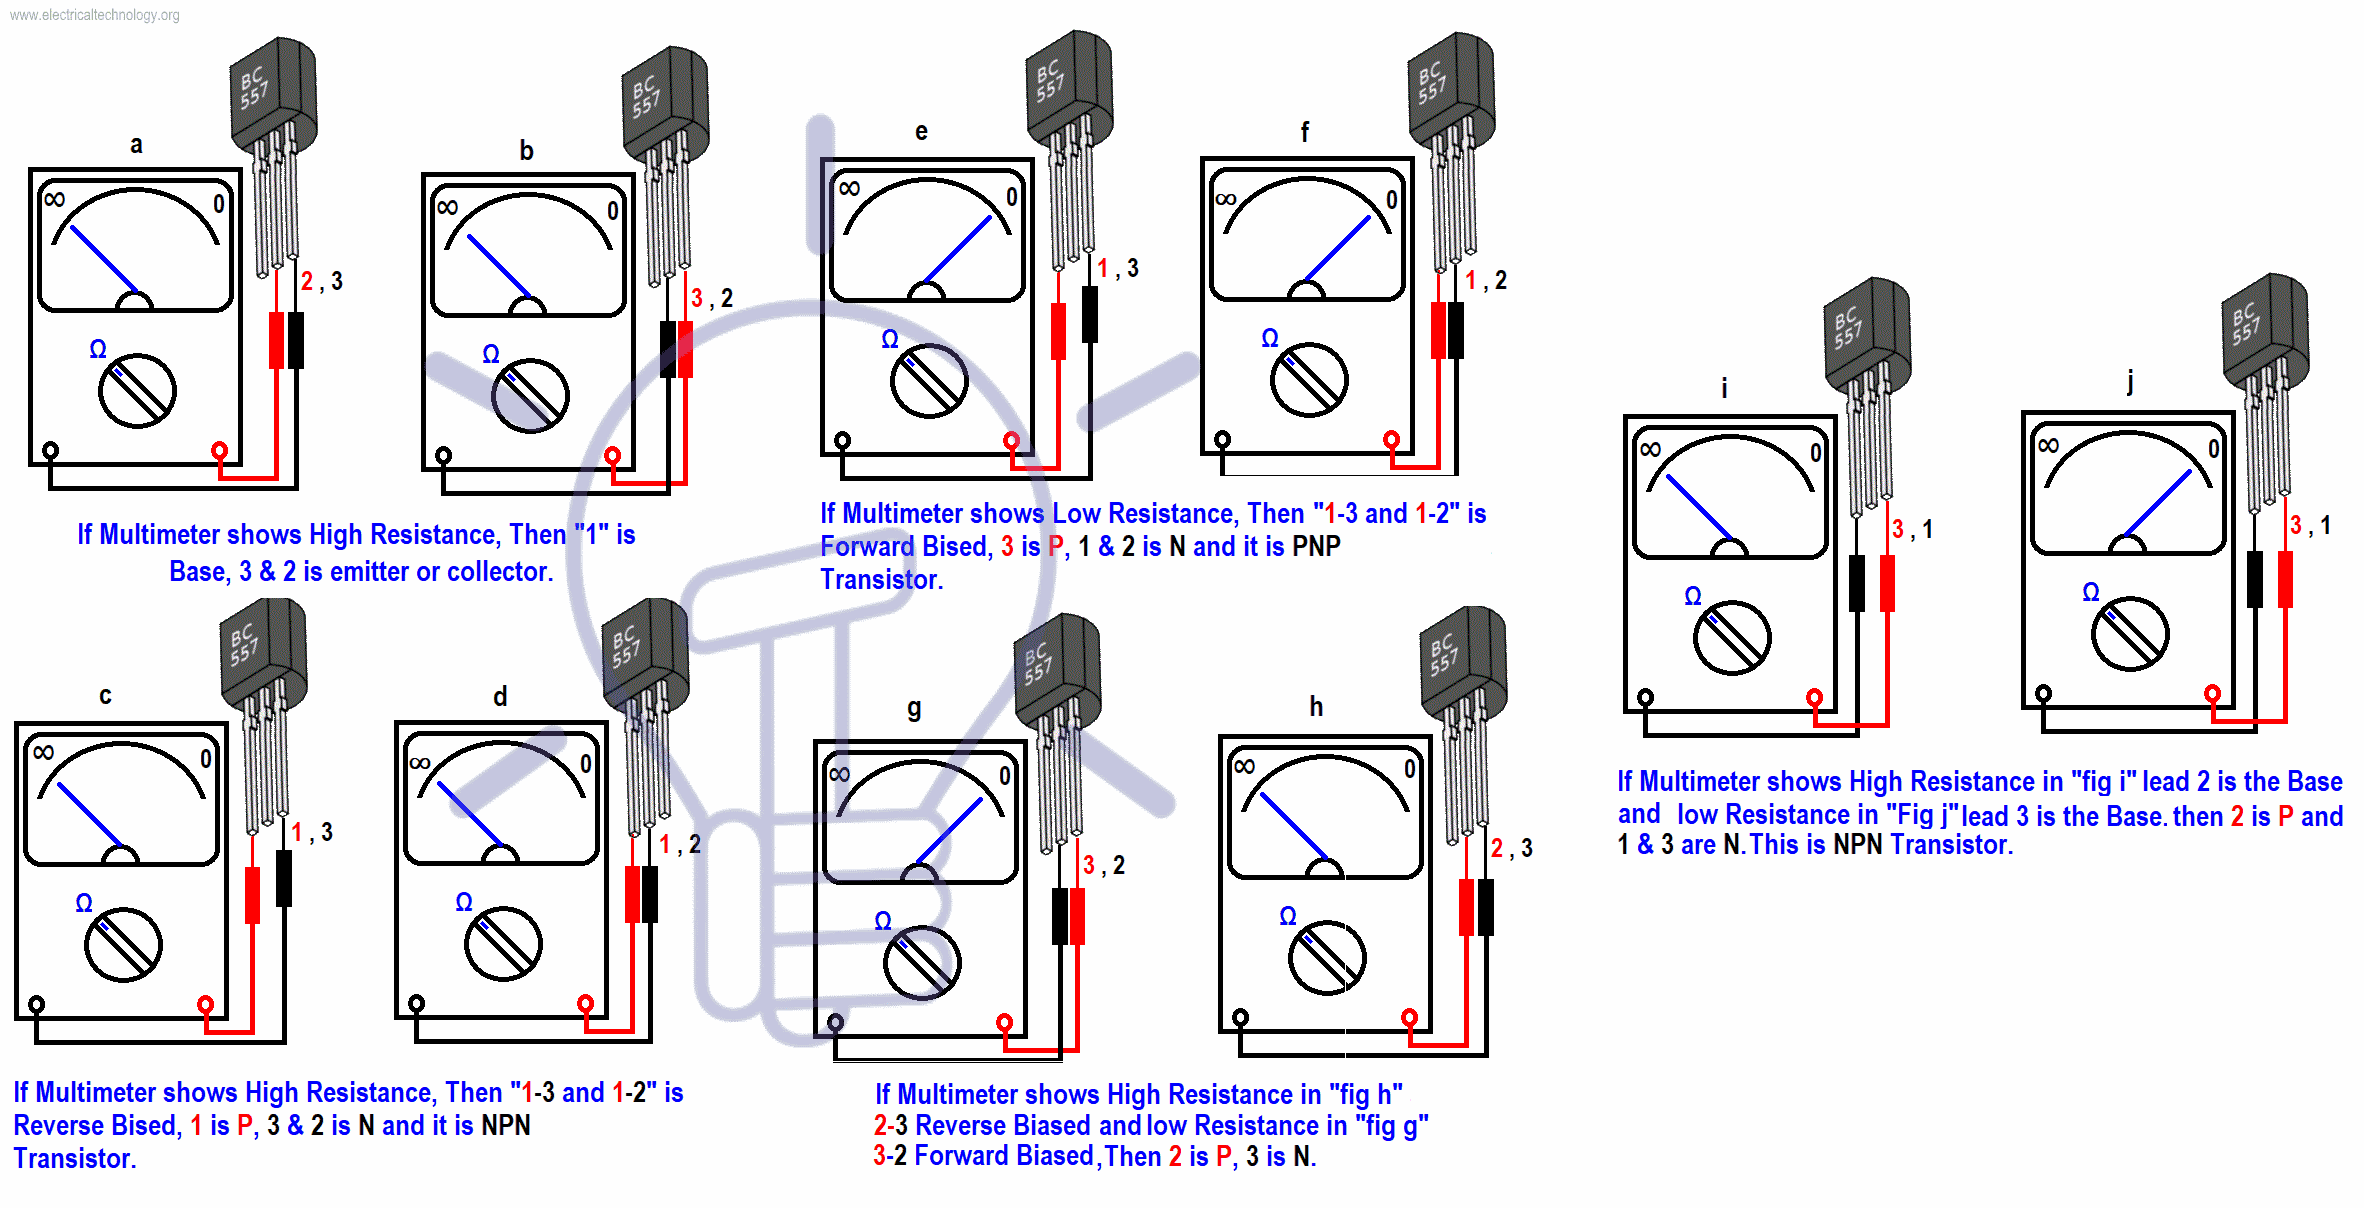 How To Check A Transistor By Multimeter Dmm Avo Npn Pnp 4 Ways Test Tester Circuit Schematic Circuits With Analog Or Digital In Ohm Range Mode